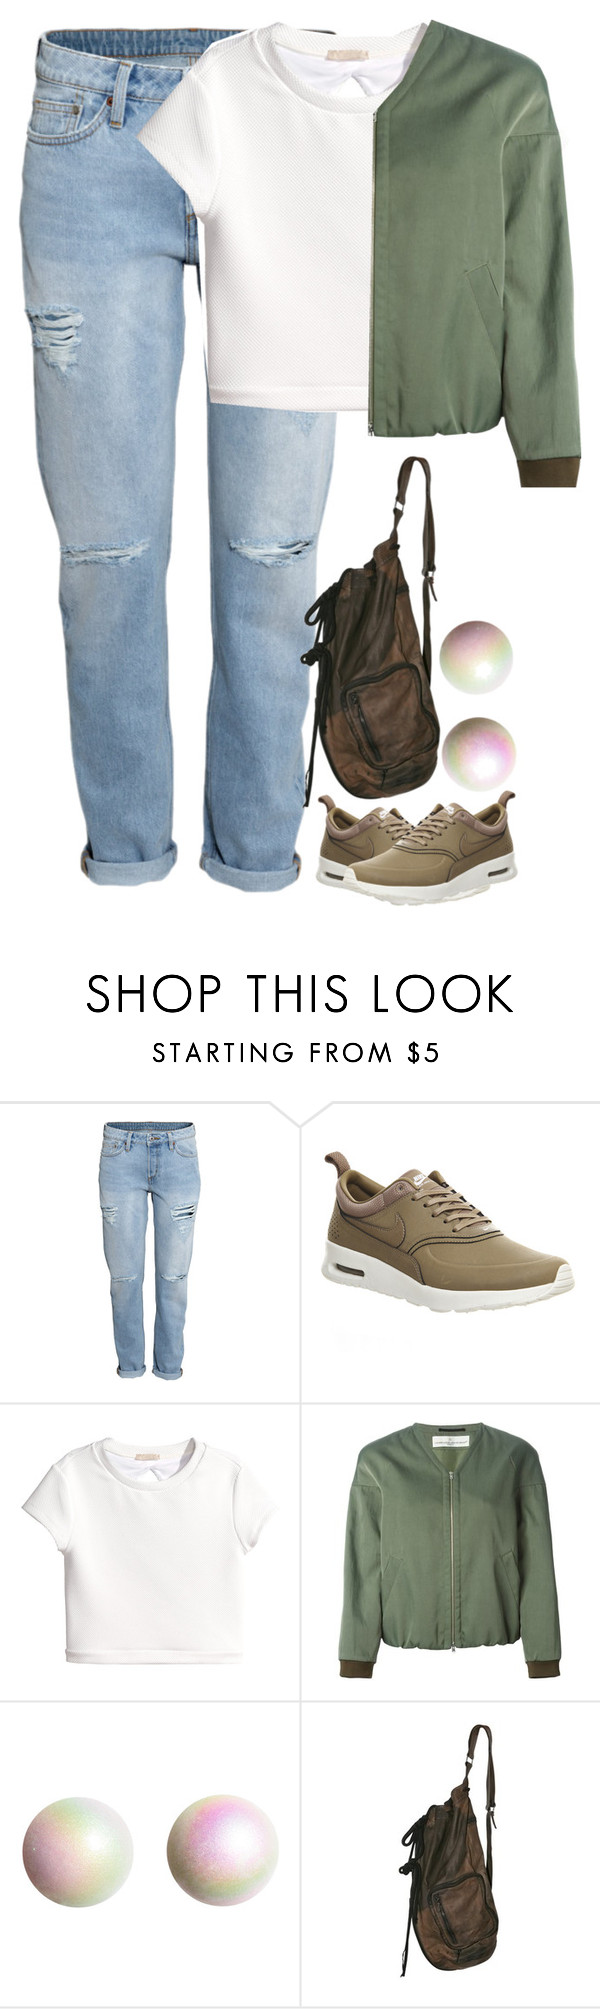 """""""Untitled #209"""" by pastpresentfuture-indiasgem ❤ liked on Polyvore featuring H&M, NIKE and Golden Goose"""